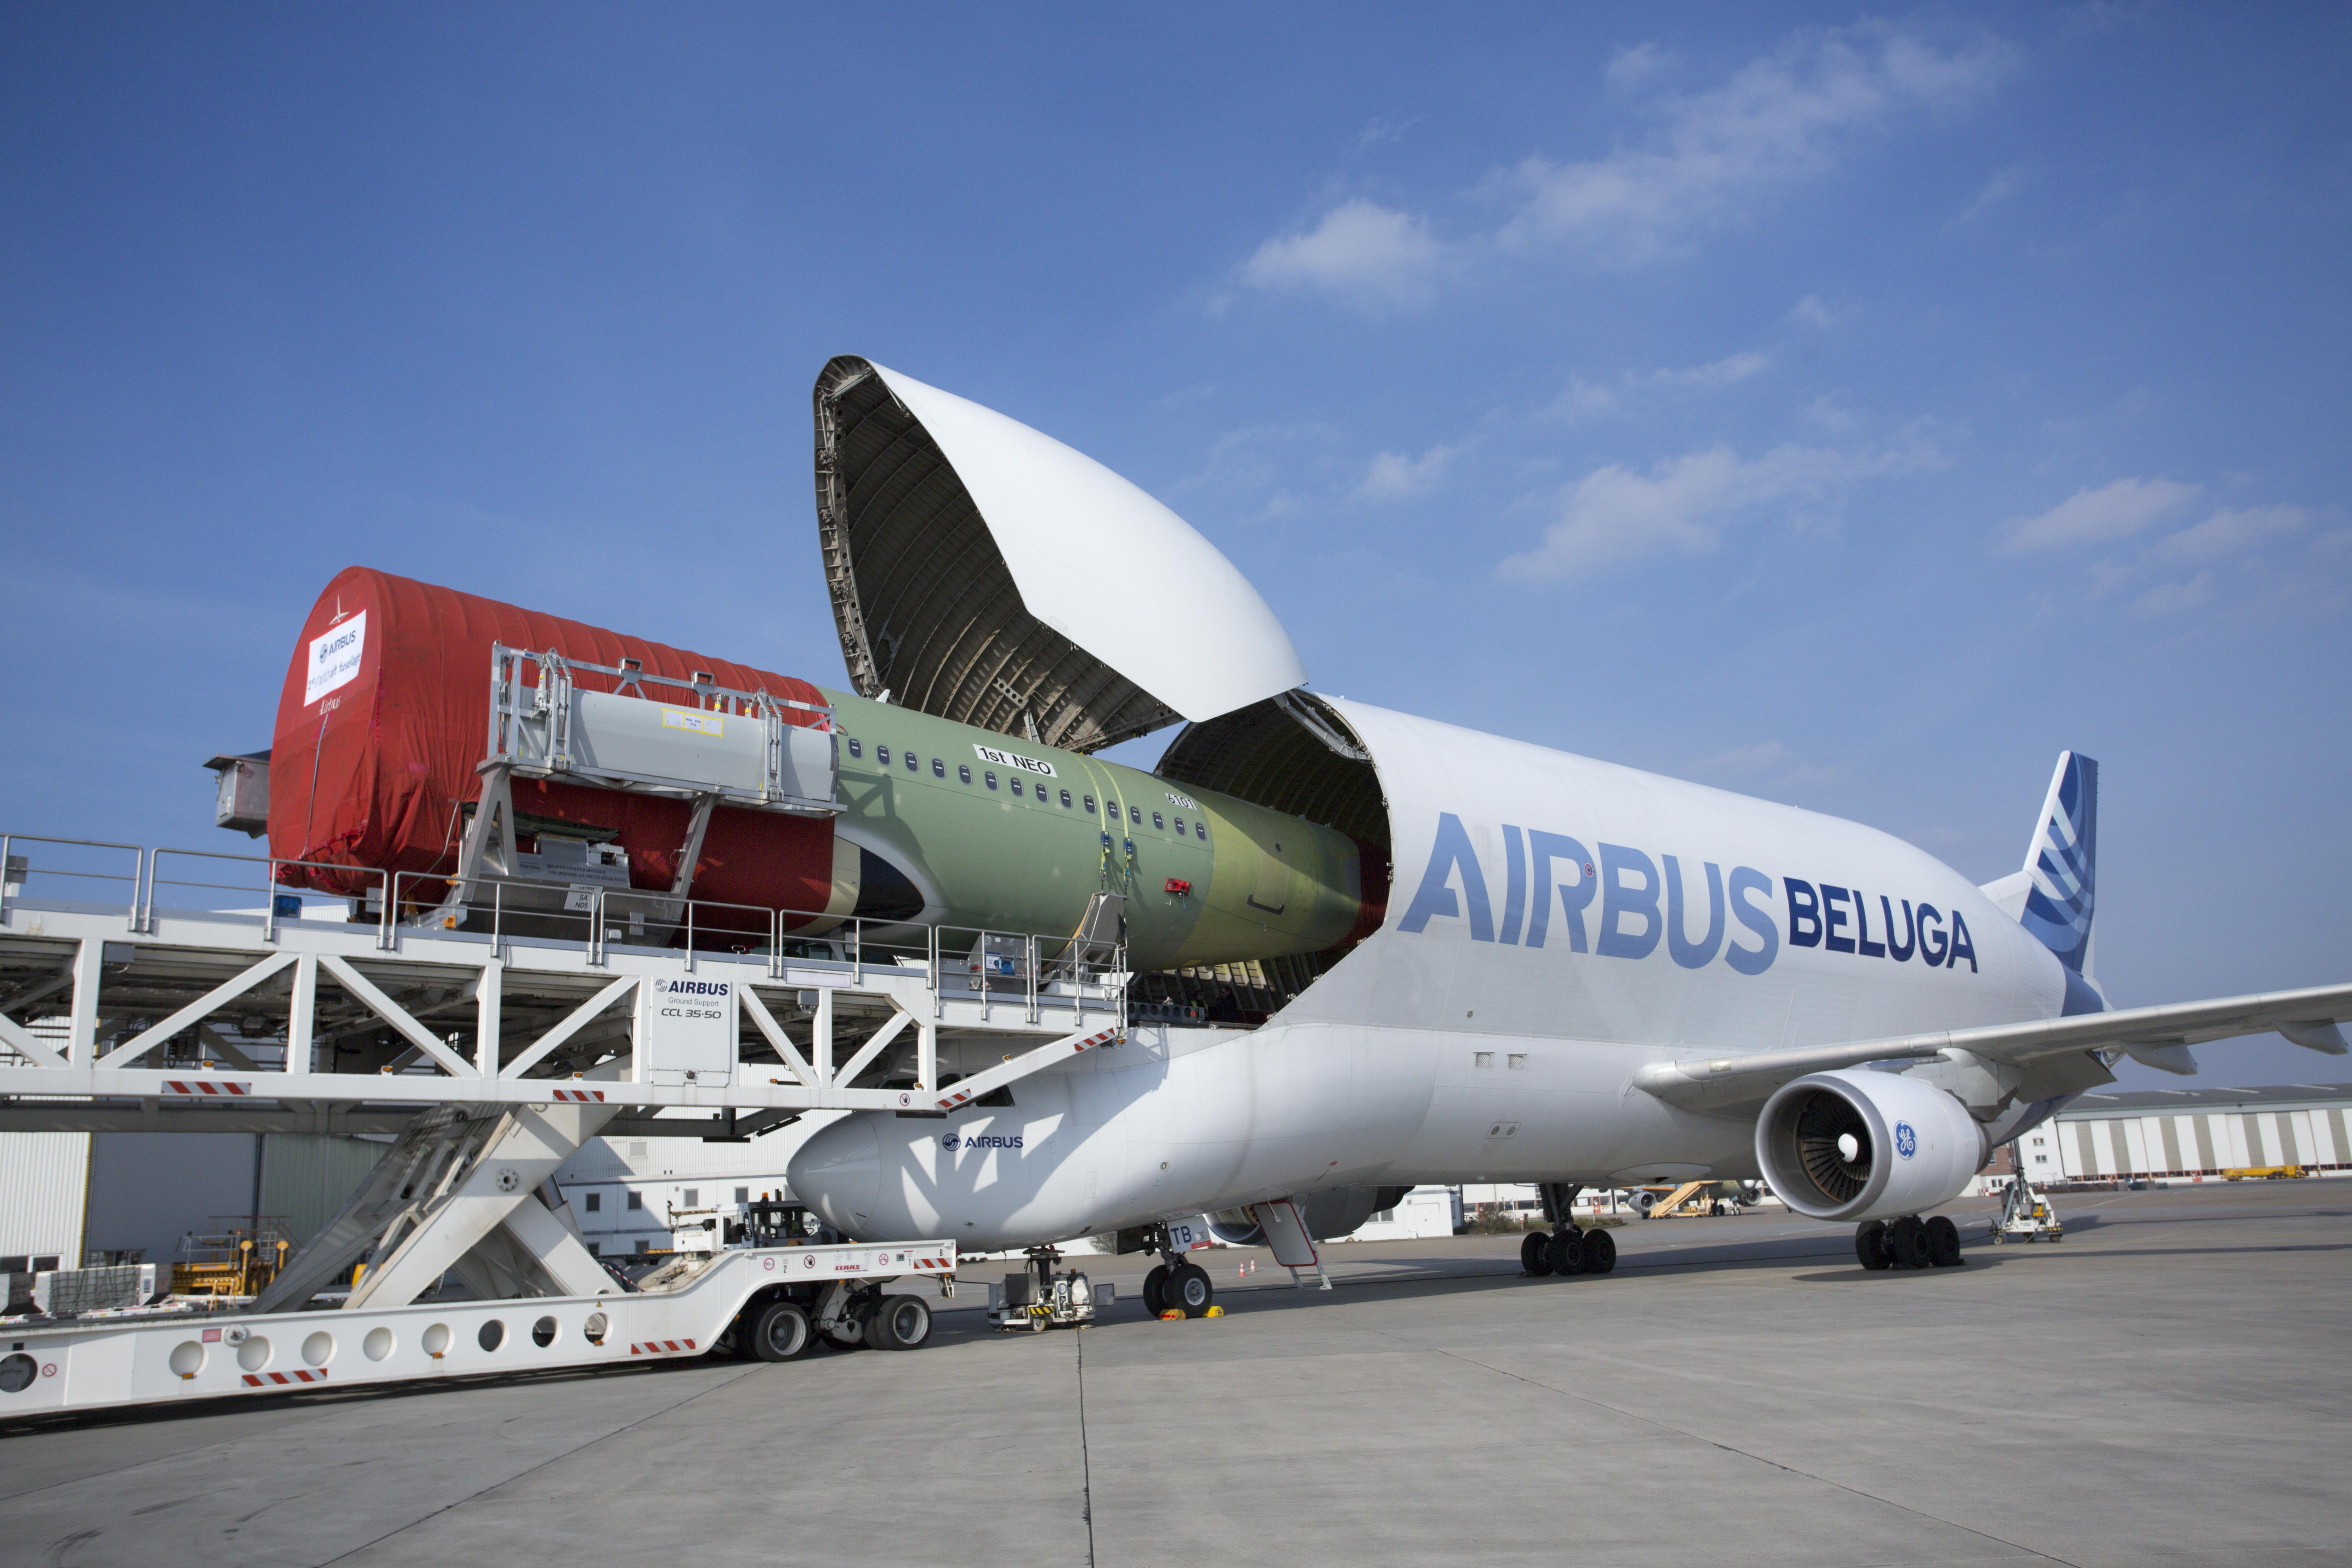 List of Airbus A330 orders and deliveries